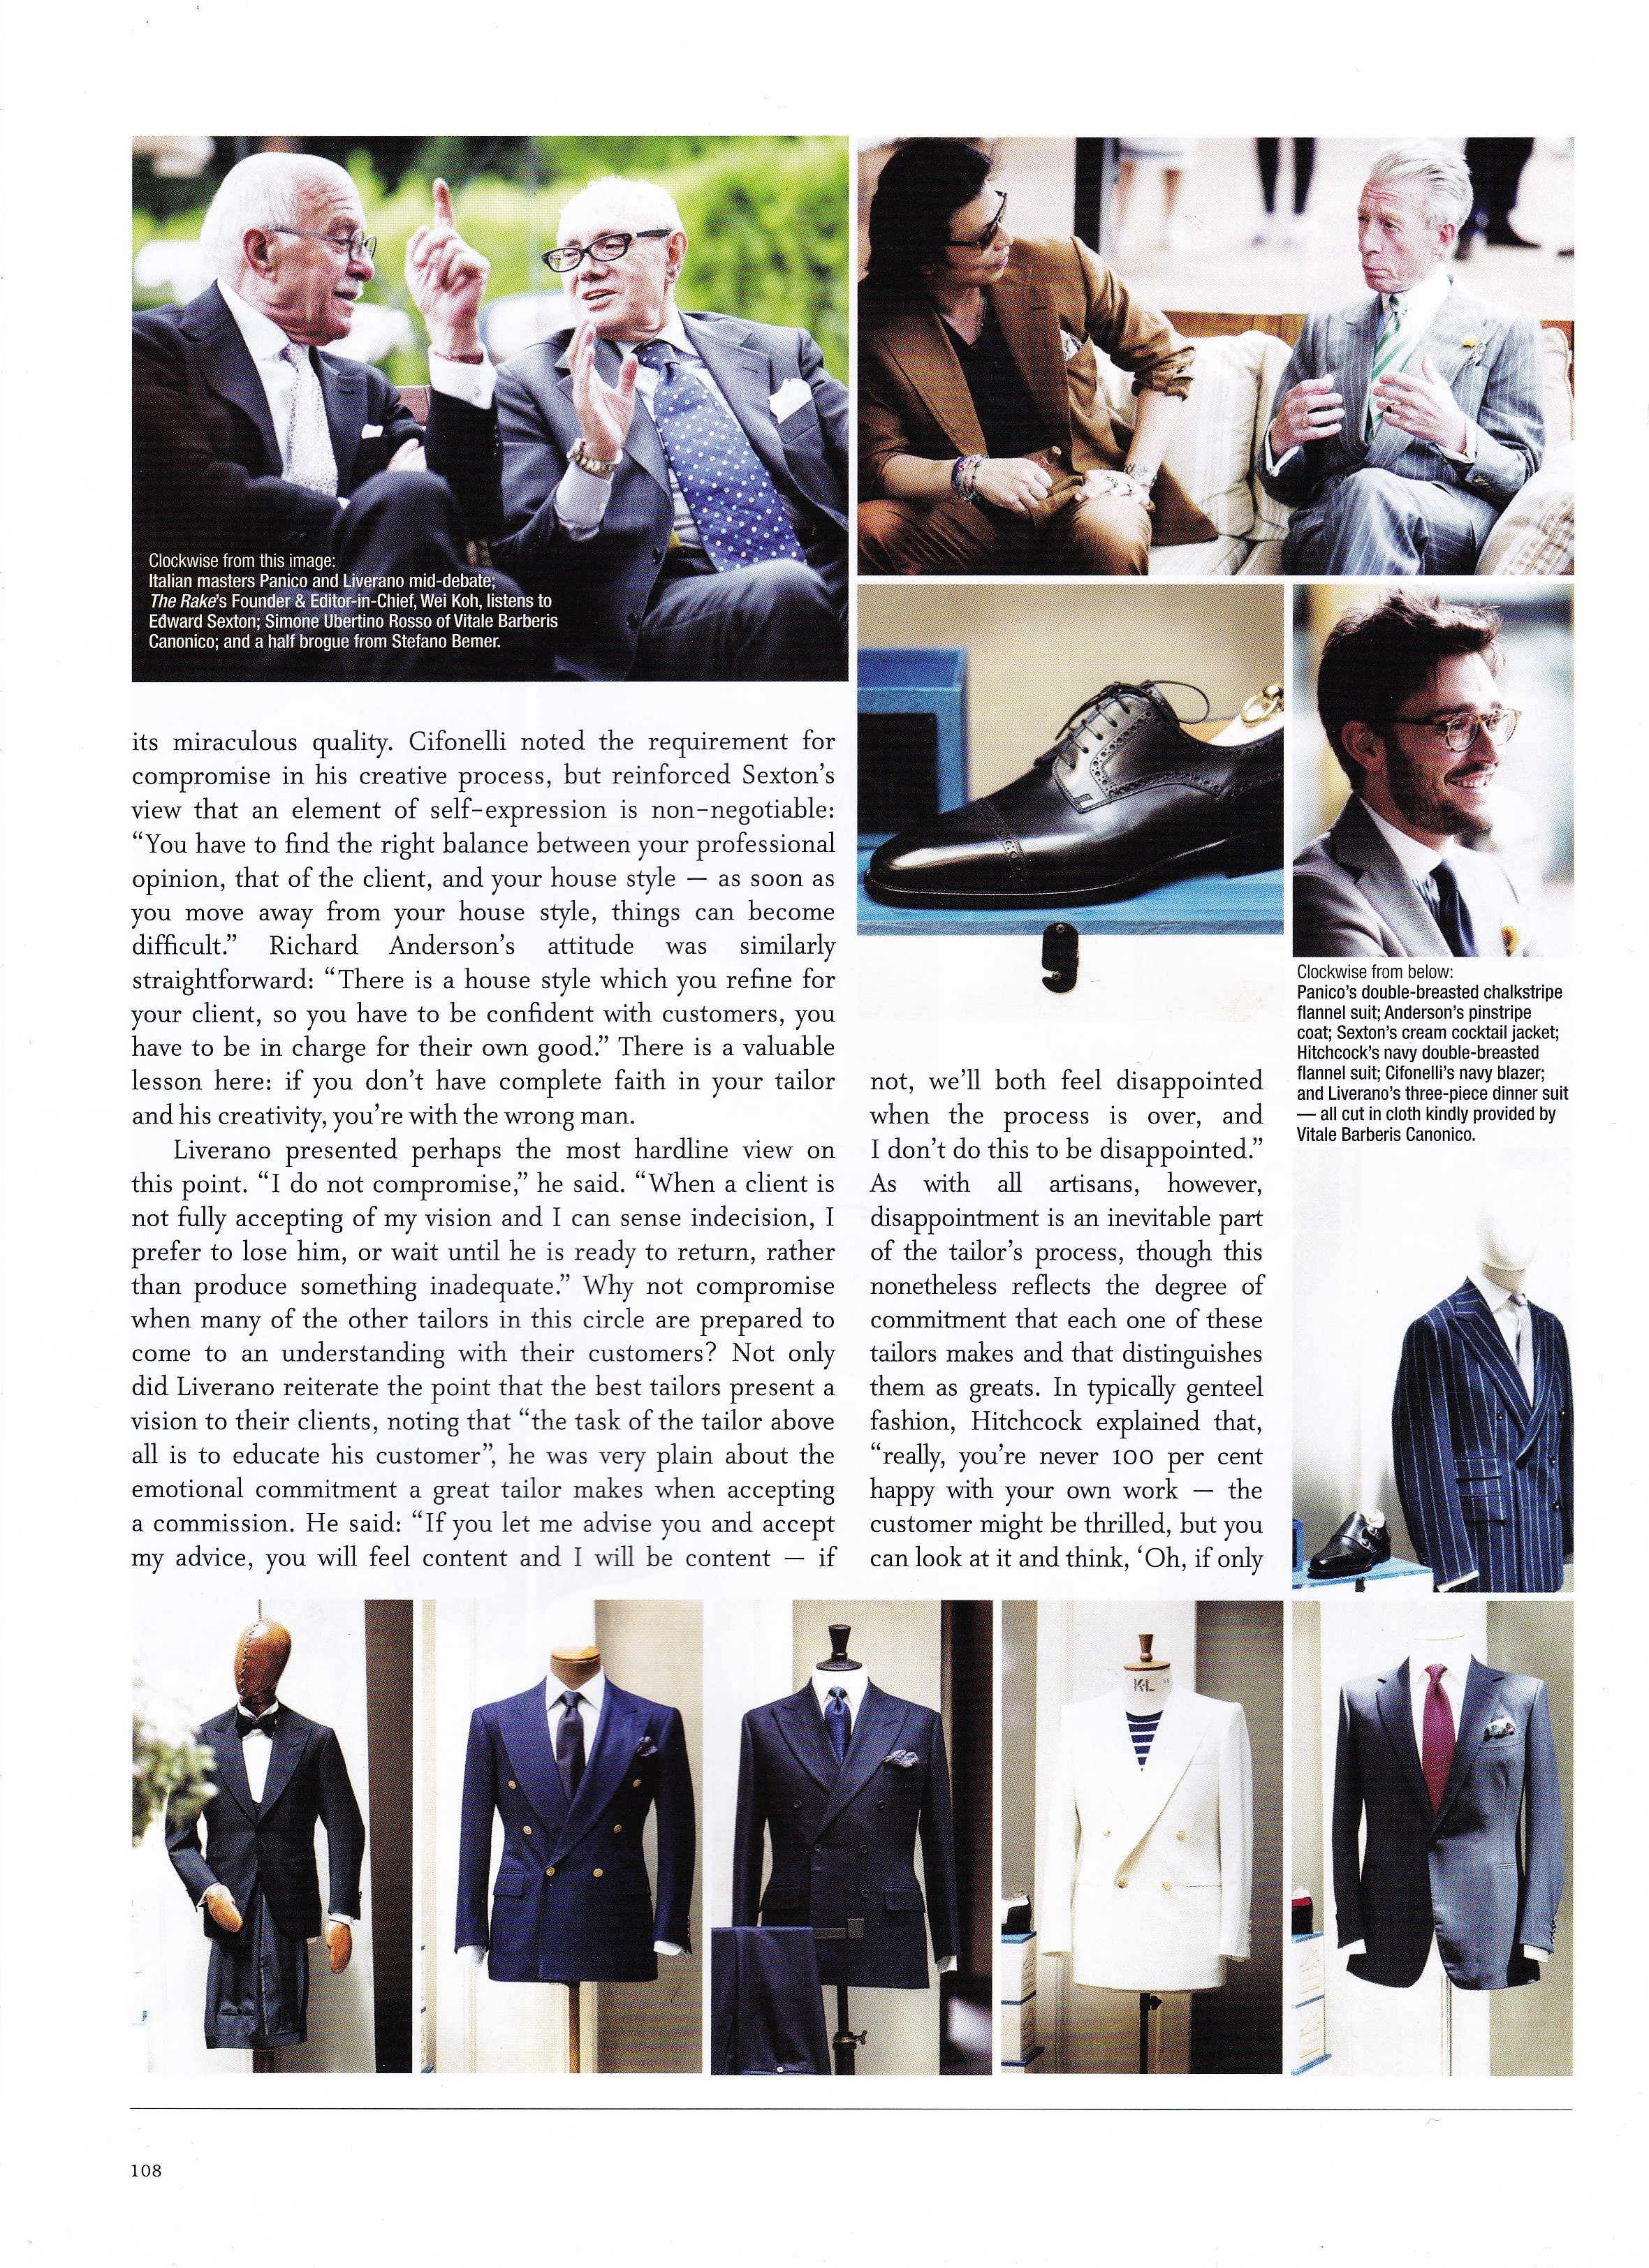 Bespoke Tailor Edward Sexton, top right, in conversation with The Rake's Wei Koh